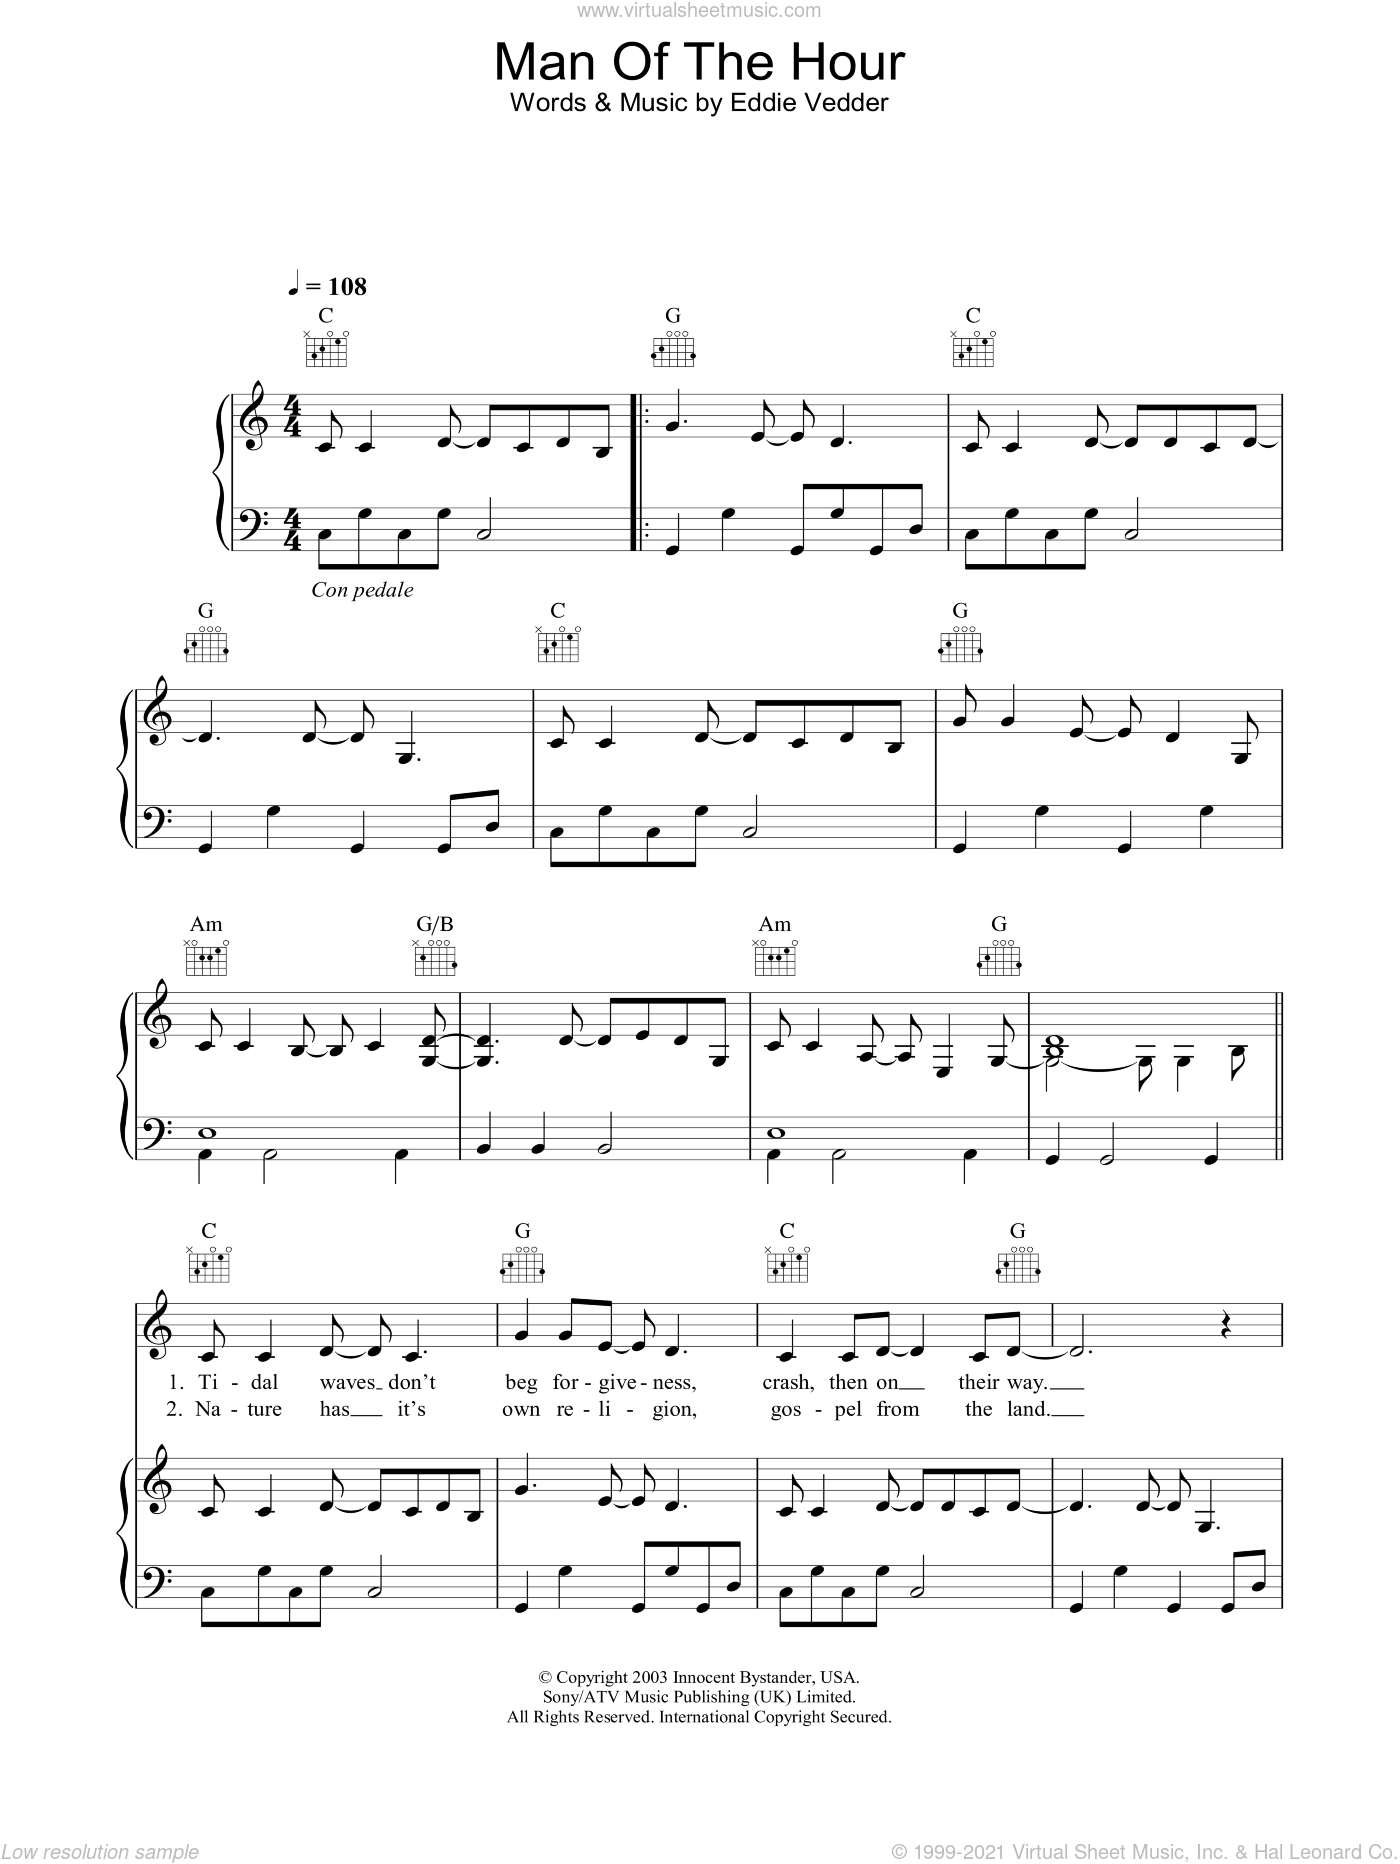 Man Of The Hour sheet music for voice, piano or guitar by Eddie Vedder and Pearl Jam. Score Image Preview.